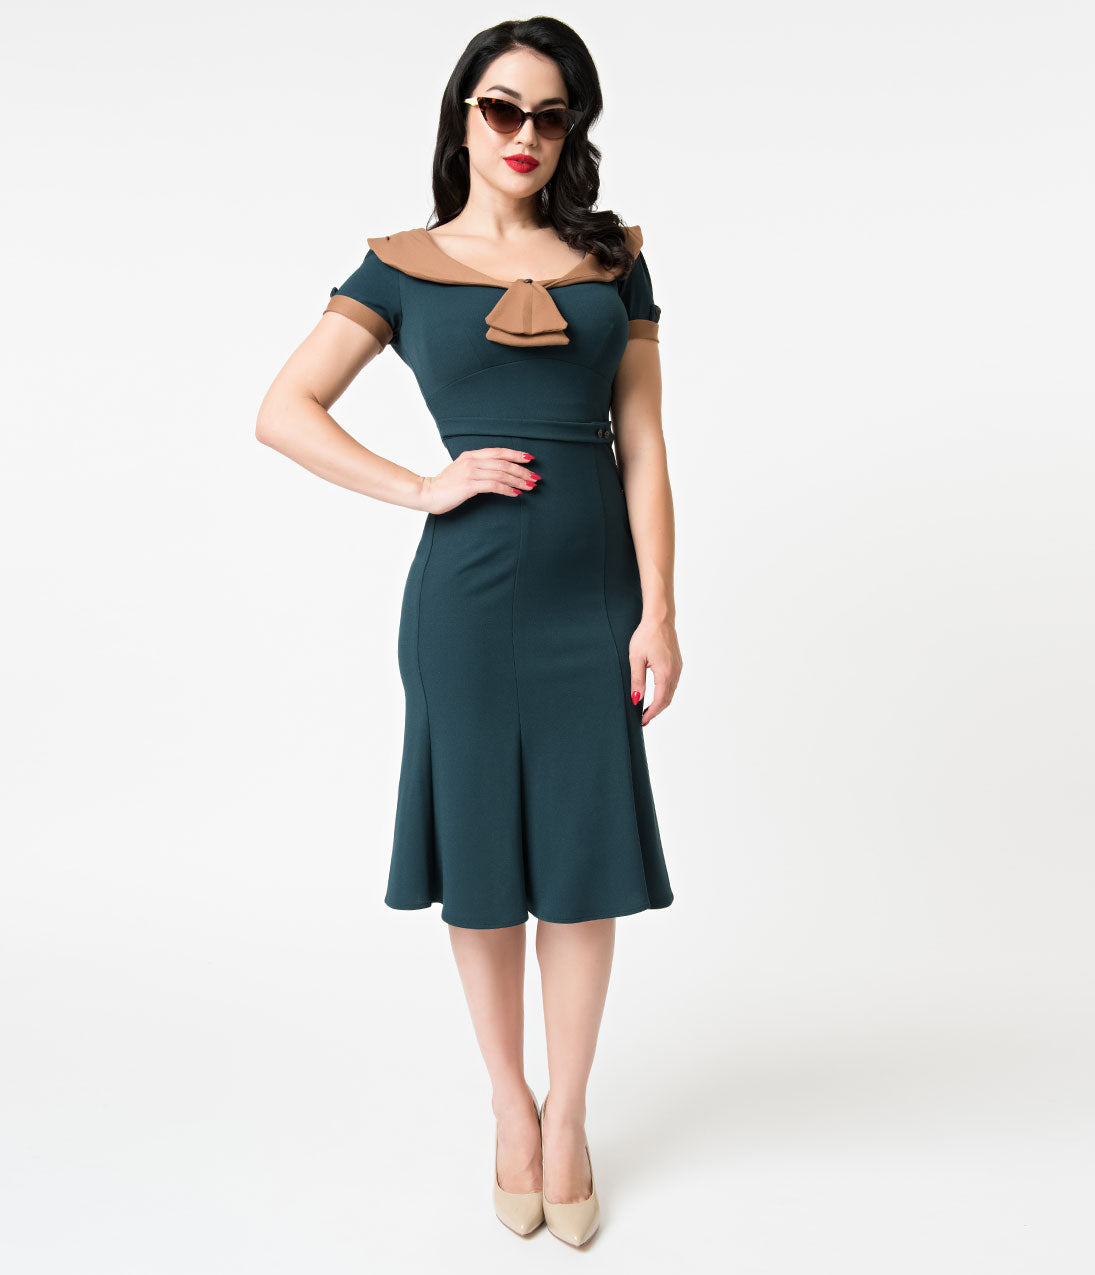 1930s Dresses | 30s Art Deco Dress Stop Staring 1940S Style Forest Green  Brown Army Girl Wiggle Dress $172.00 AT vintagedancer.com